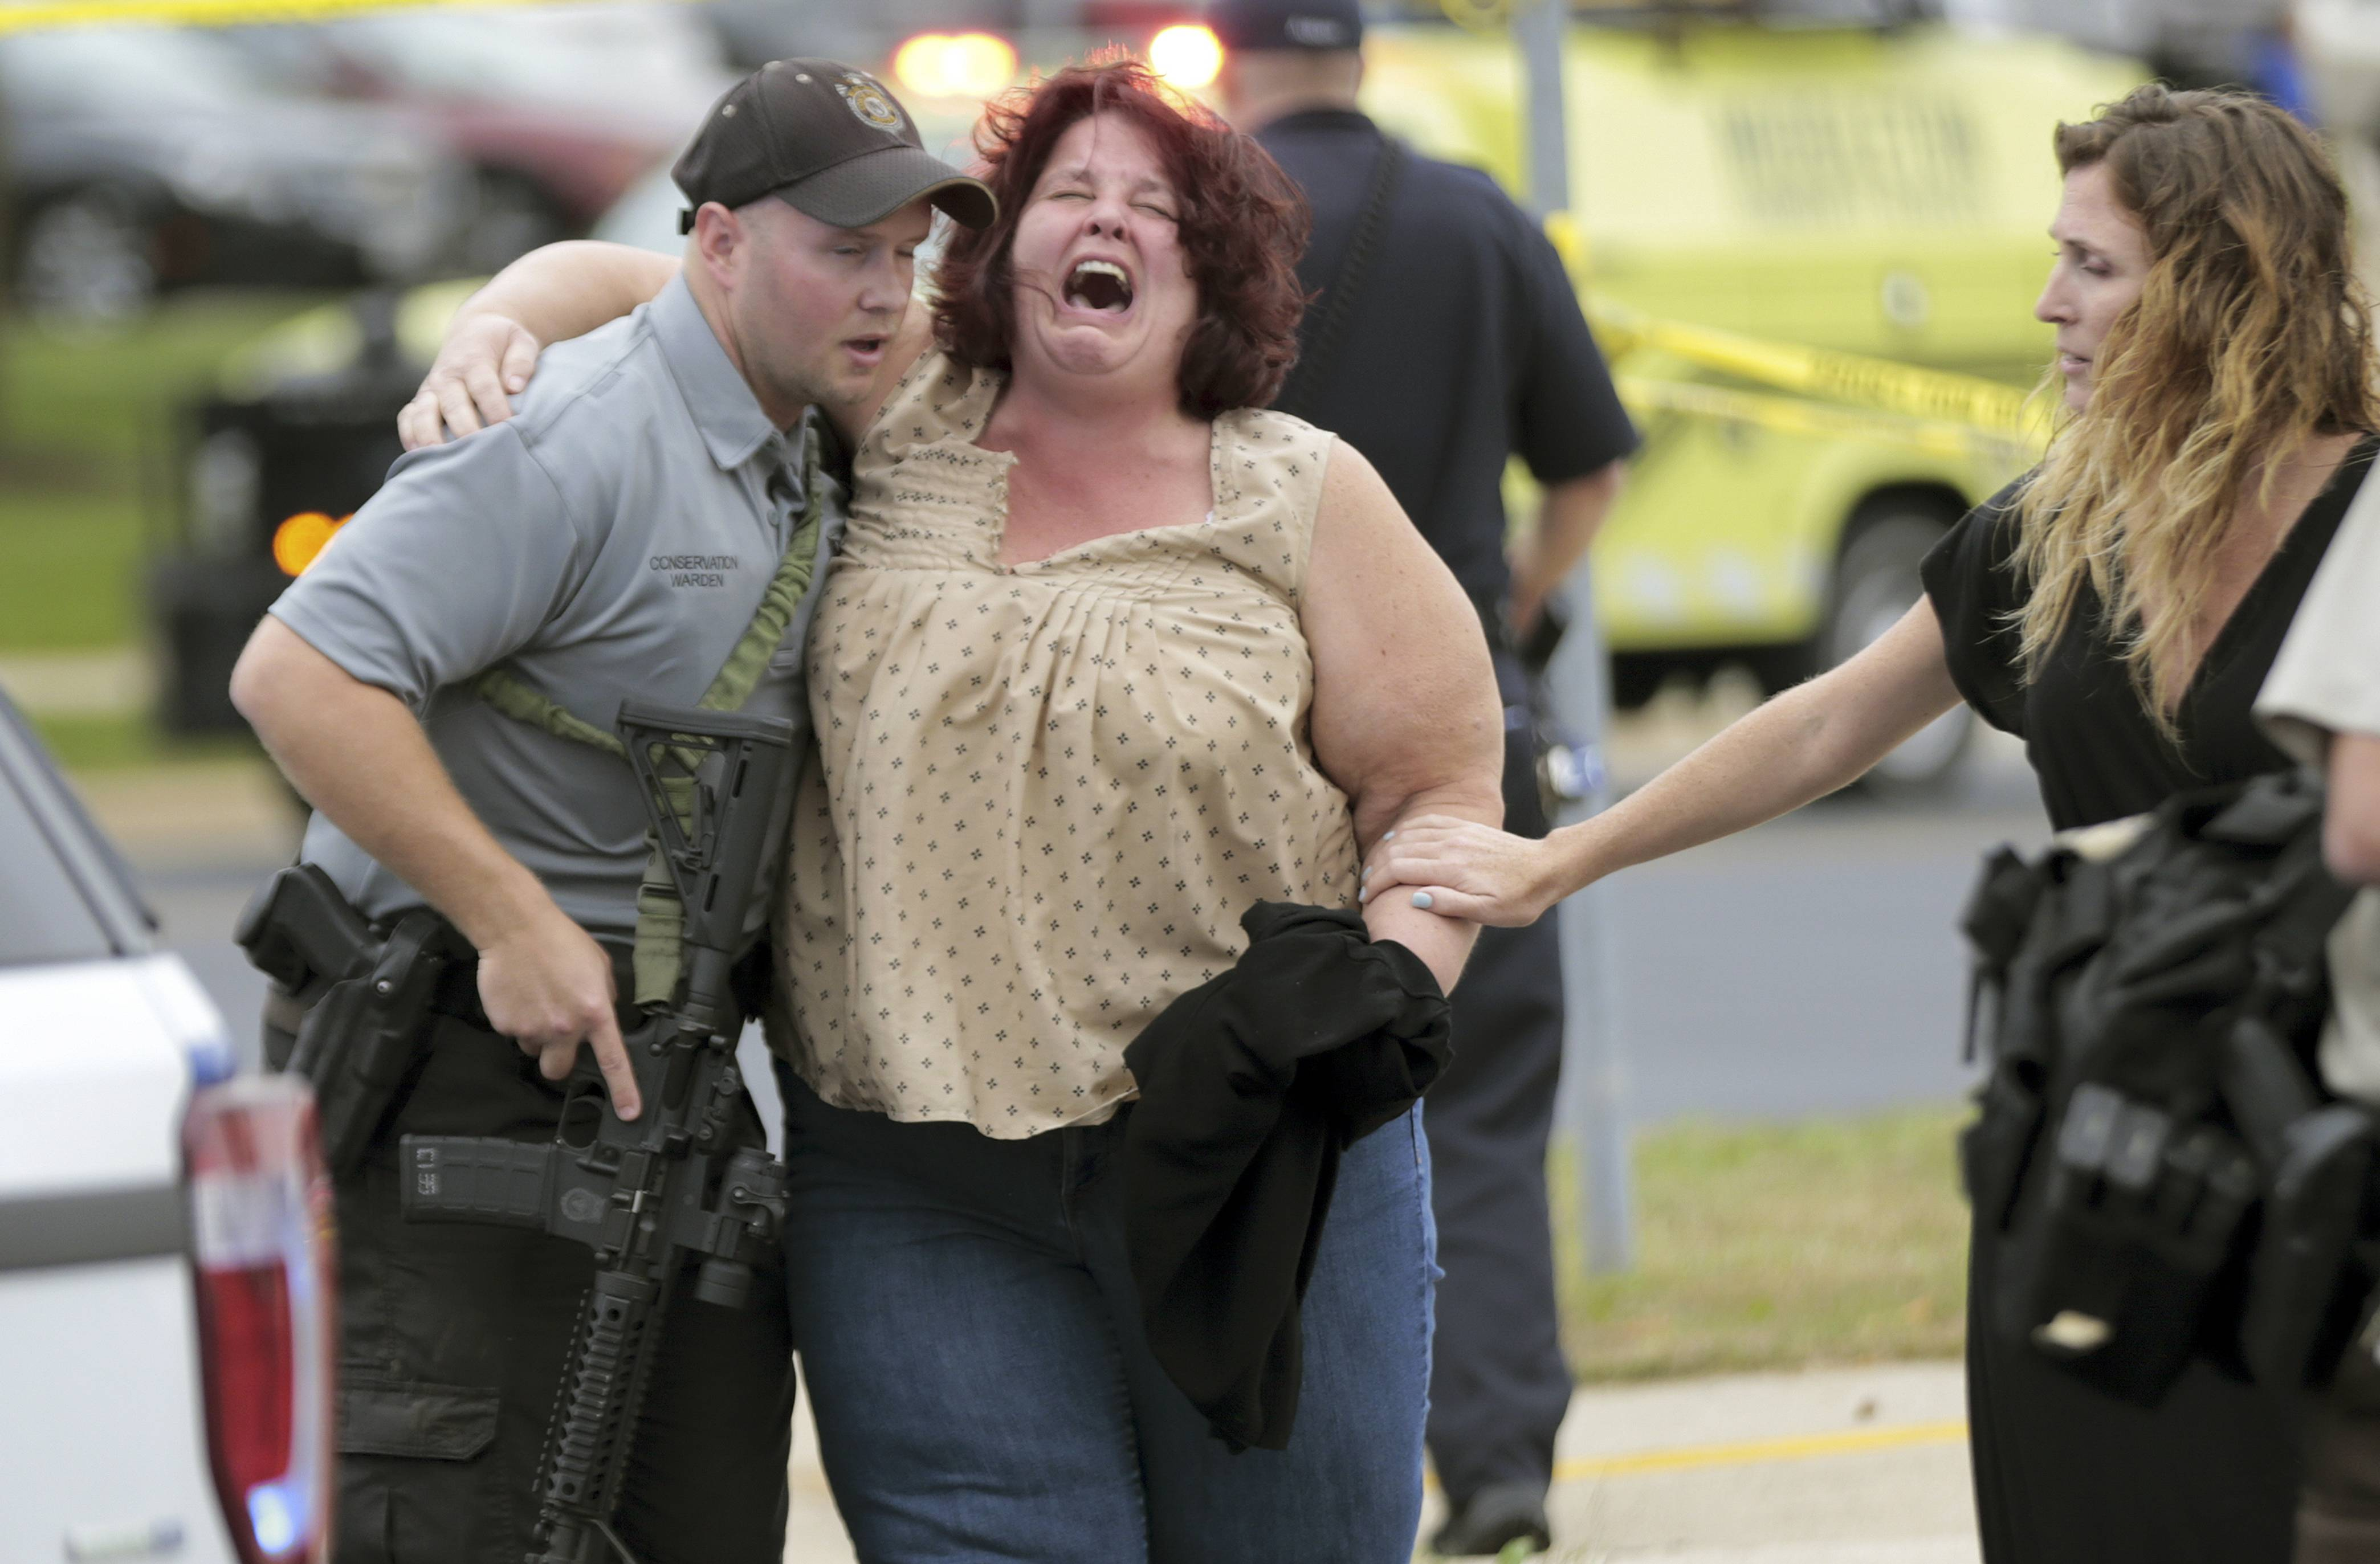 A women is escorted from the scene of a shooting at a software company in Middleton, Wis., Wednesday, Sept. 19, 2018. Four people were shot and wounded during the shooting in the suburb of Madison, according to a city administrator. (Steve Apps/Wisconsin State Journal via AP)